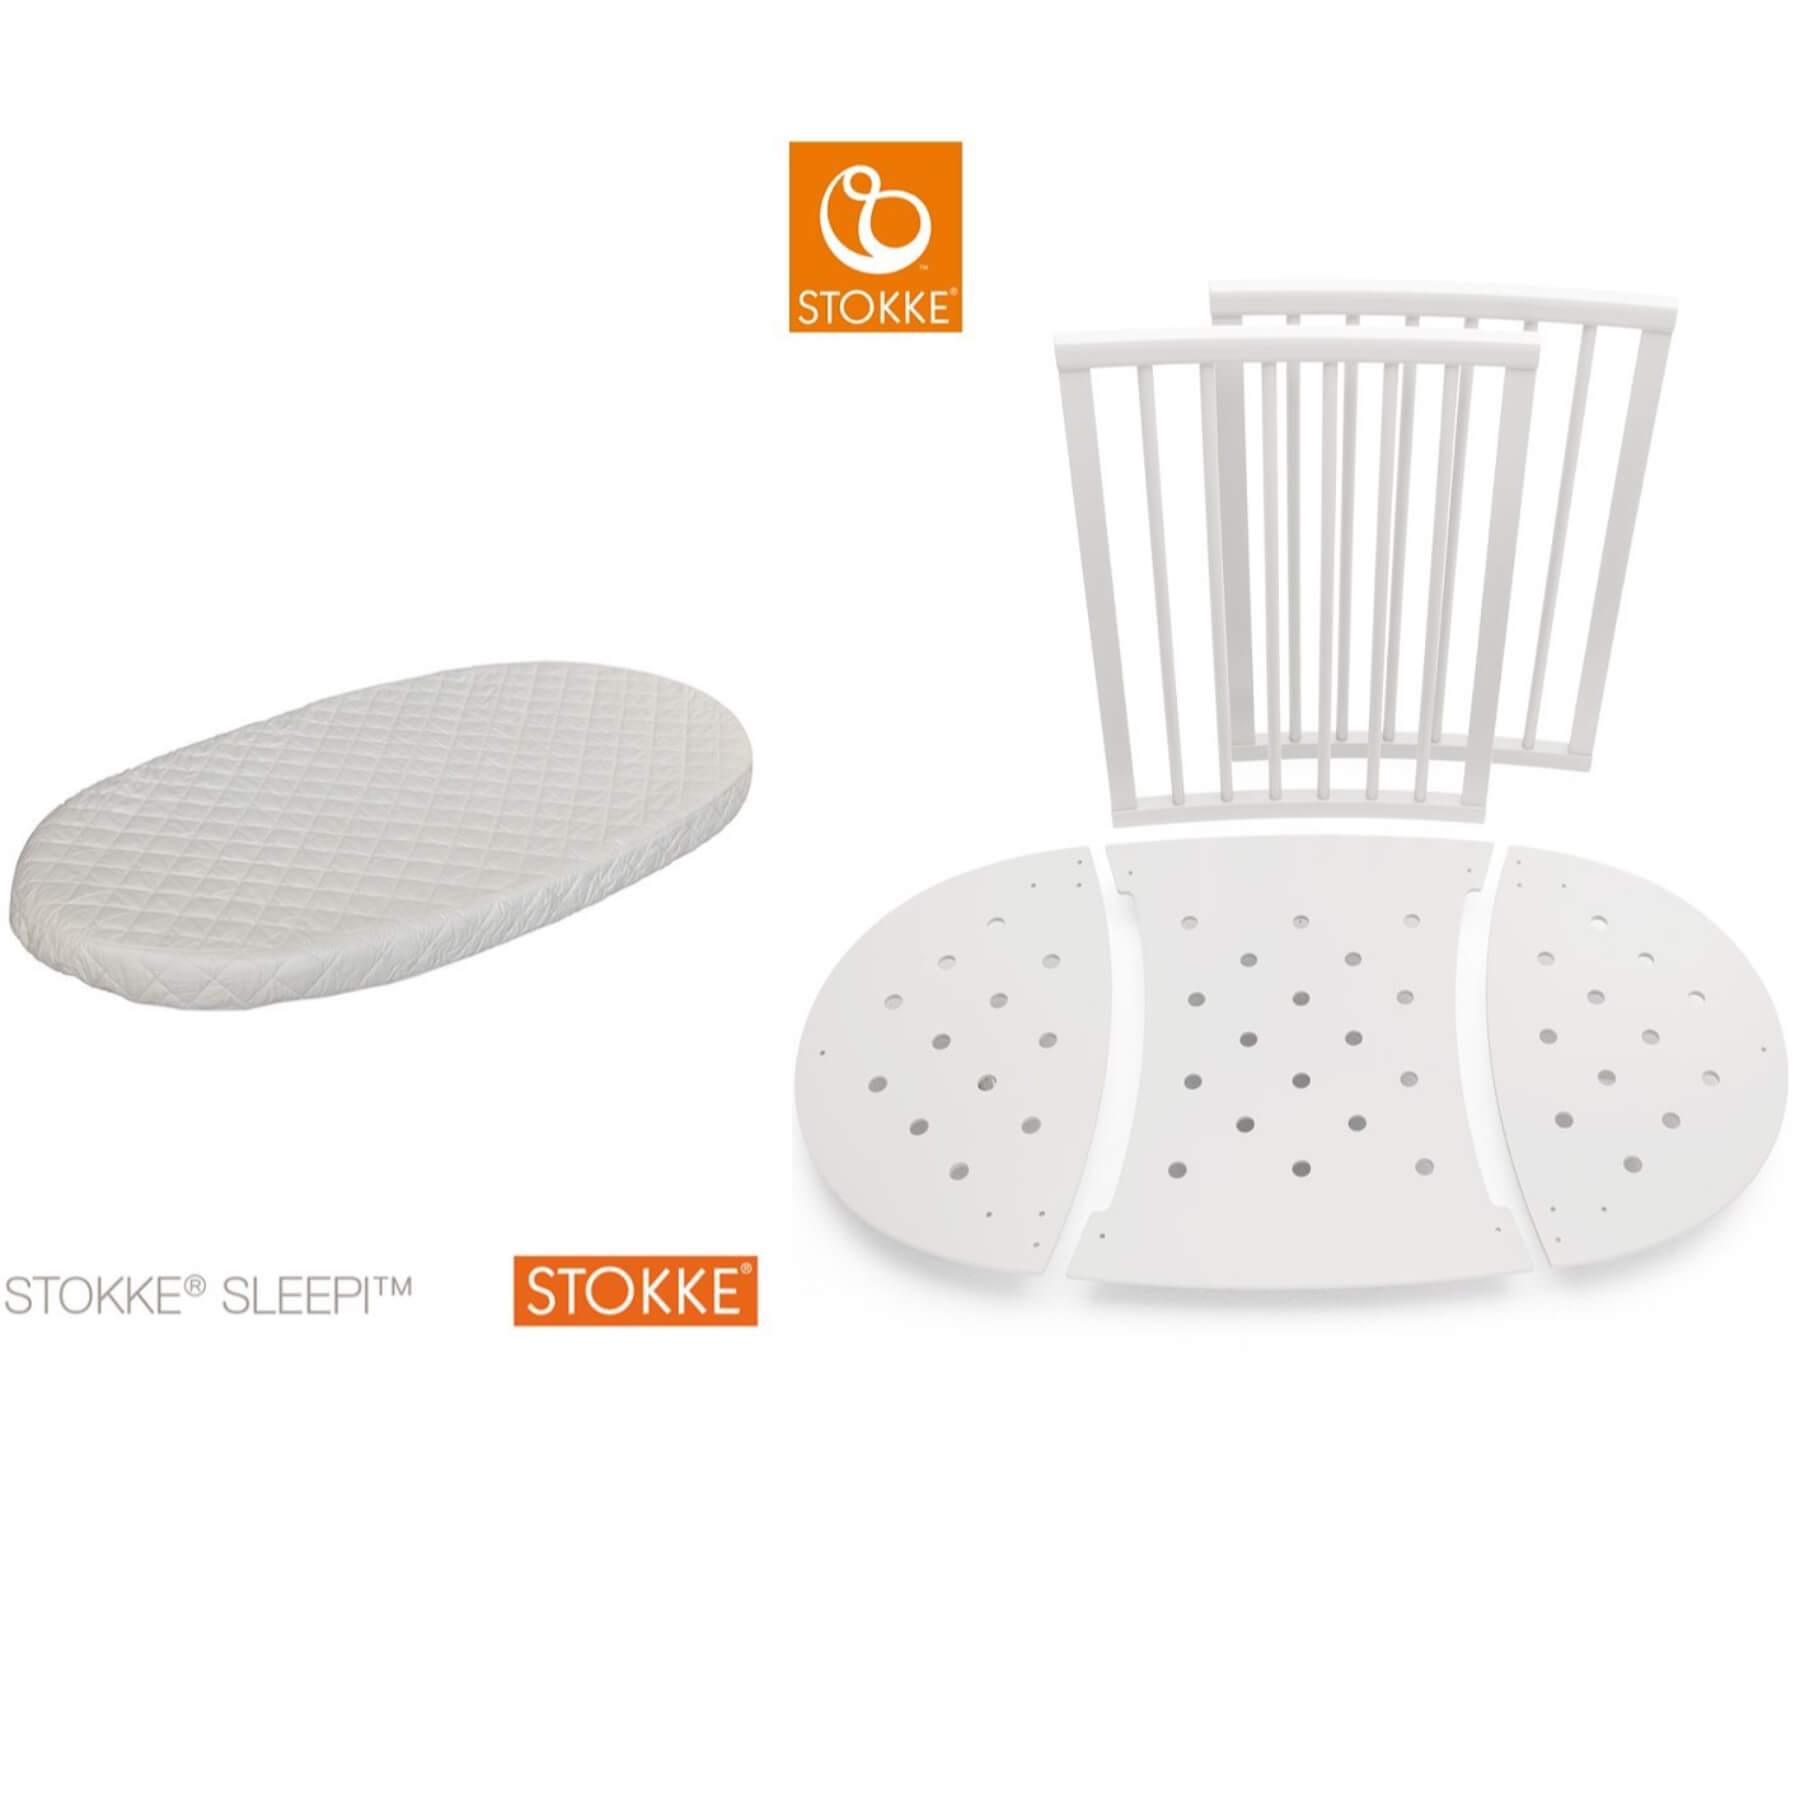 Stokke Sleepi Bed Extension and Mattress